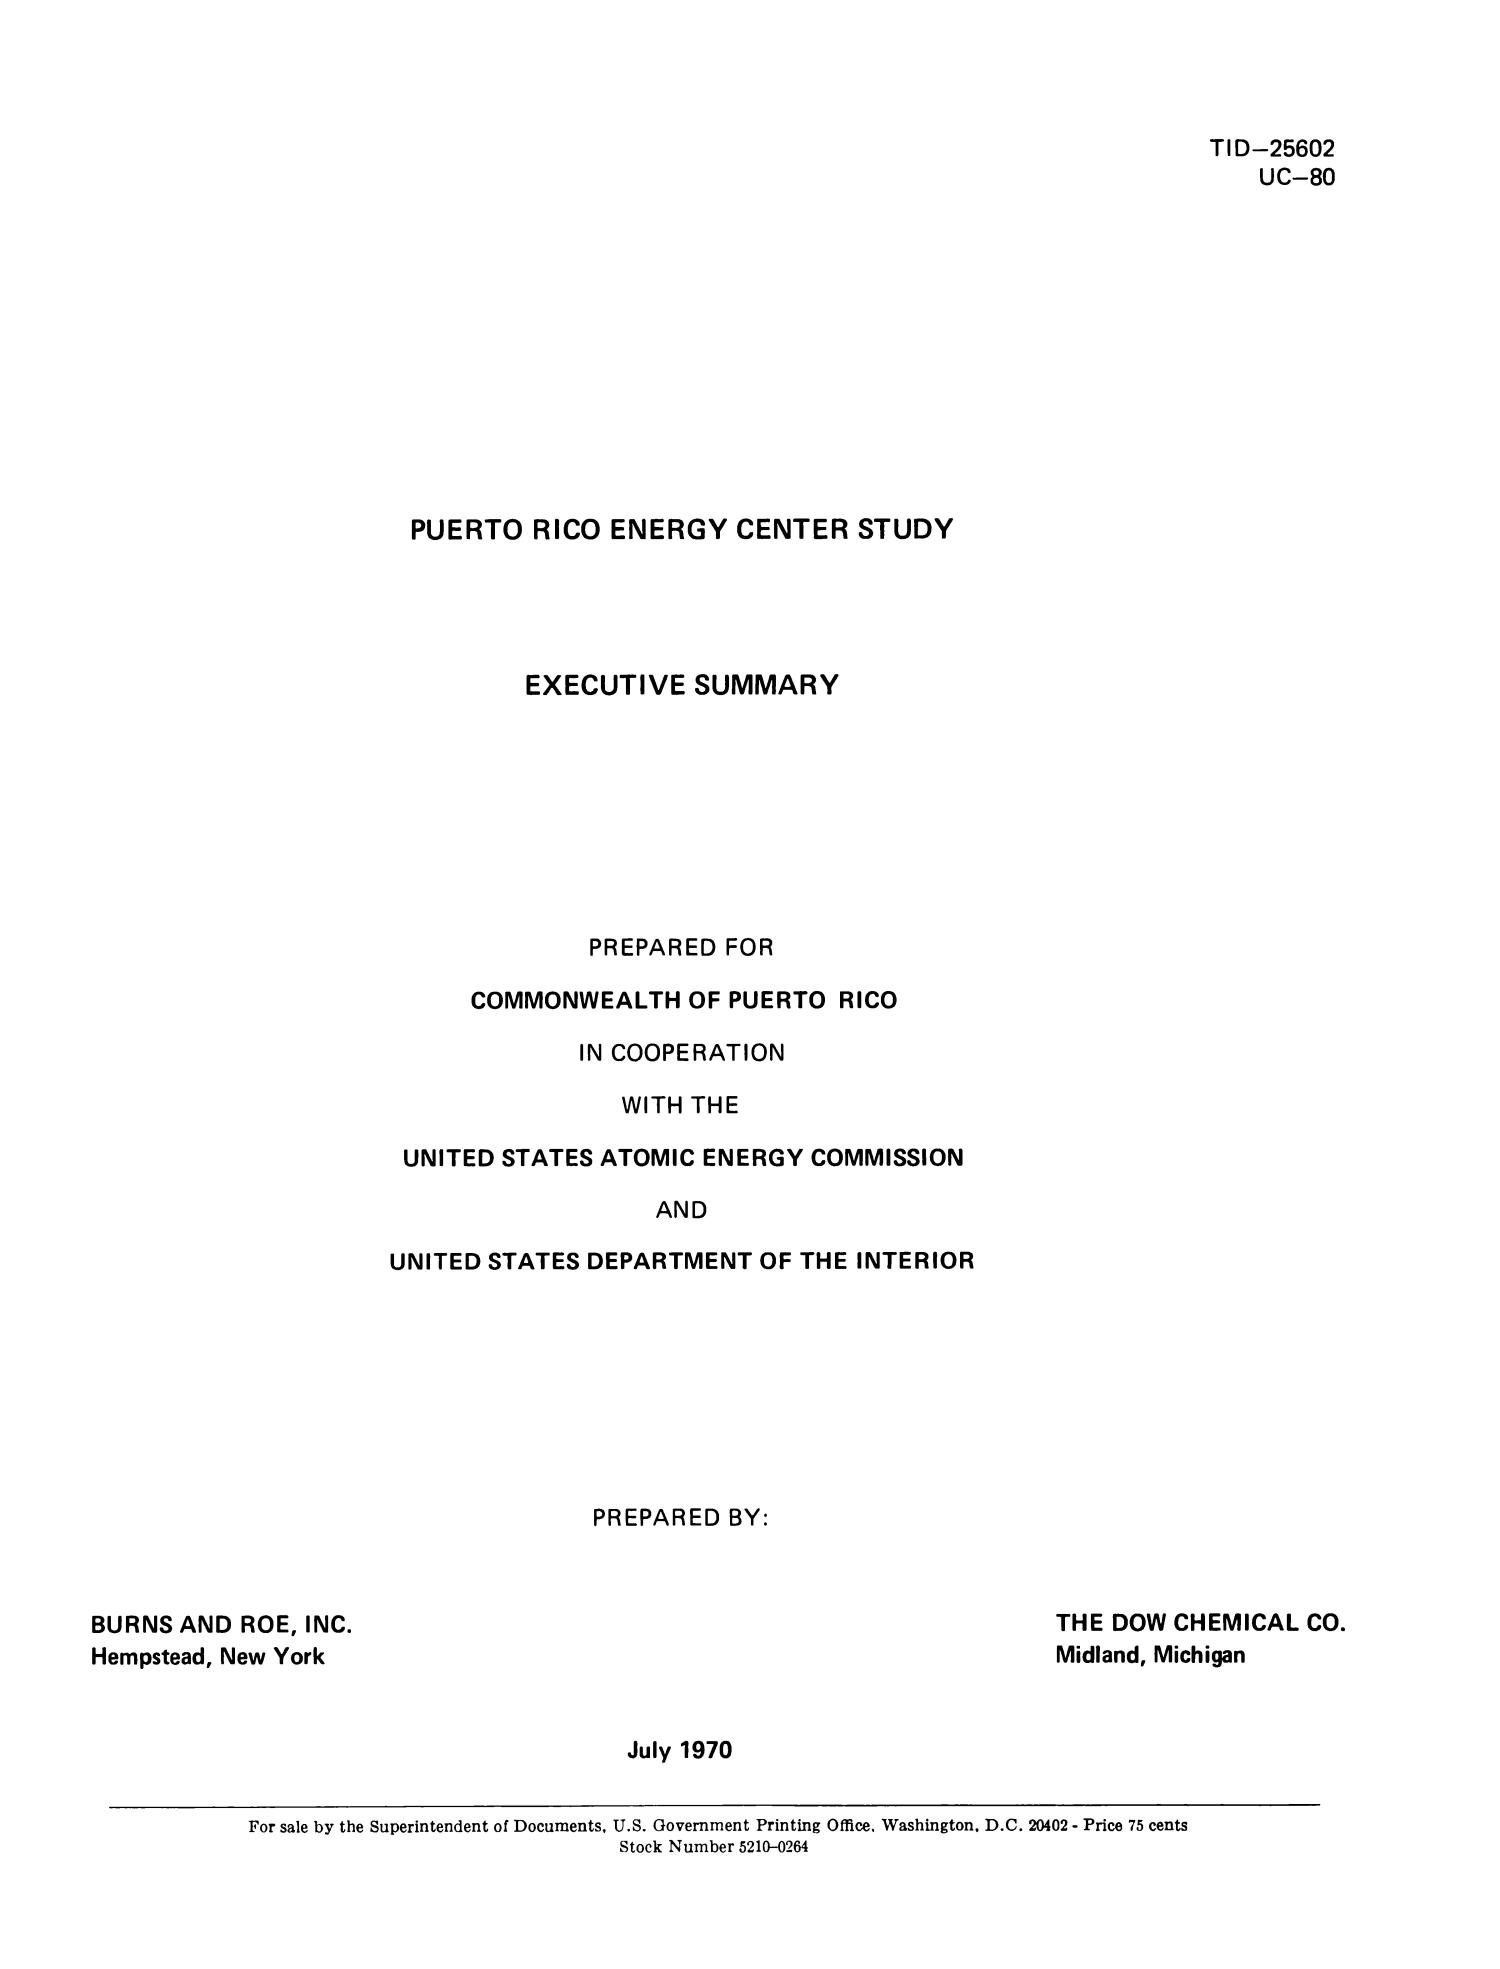 Puerto Rico Energy Center Study: Executive Study                                                                                                      Title Page